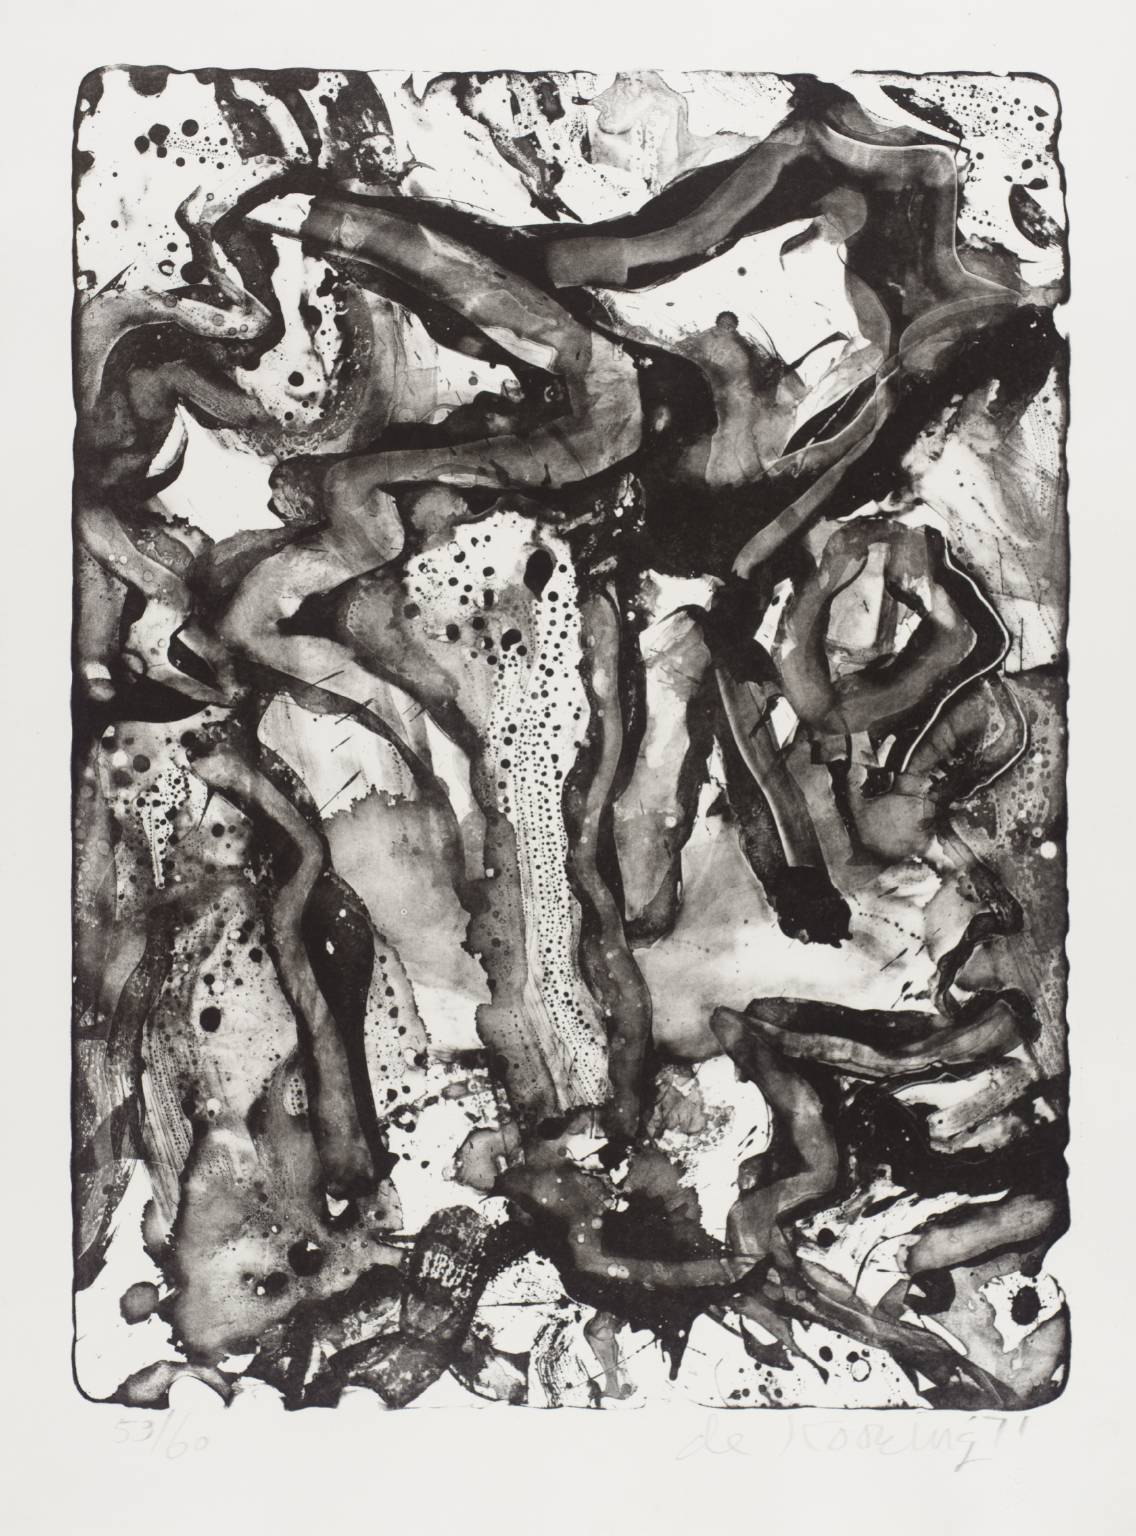 Willem de Kooning - Landscape at Stanton Street, 1971. Lithograph on paper